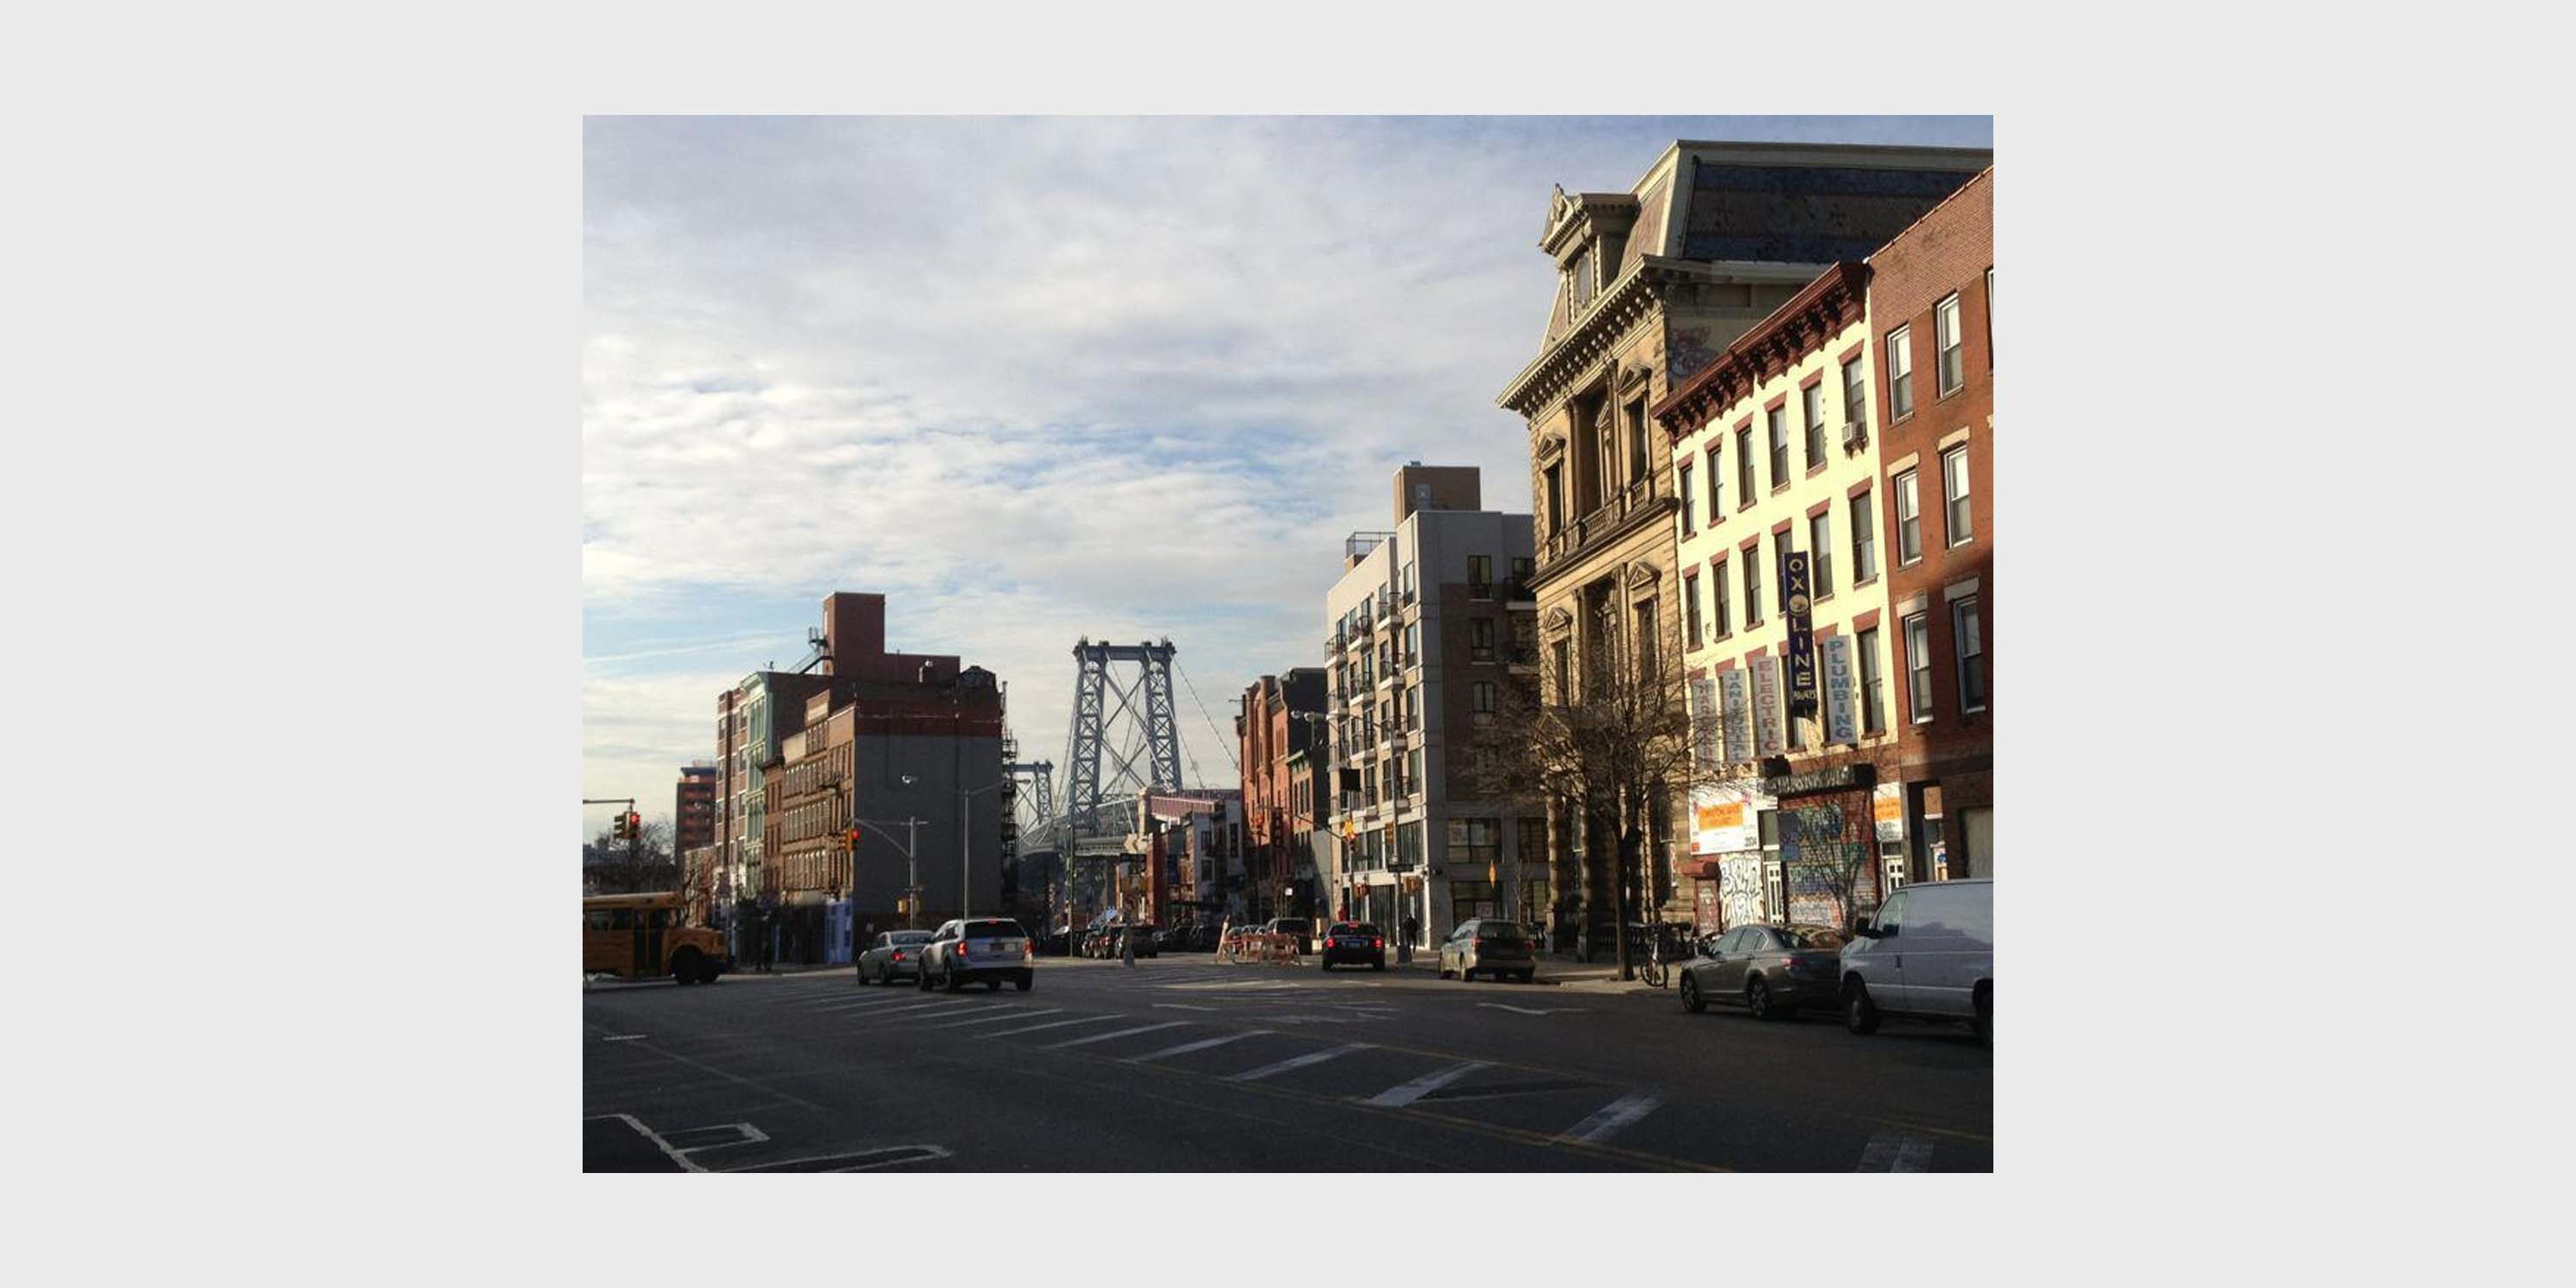 street in South Williamsburg with Williamsburg Bridge in background